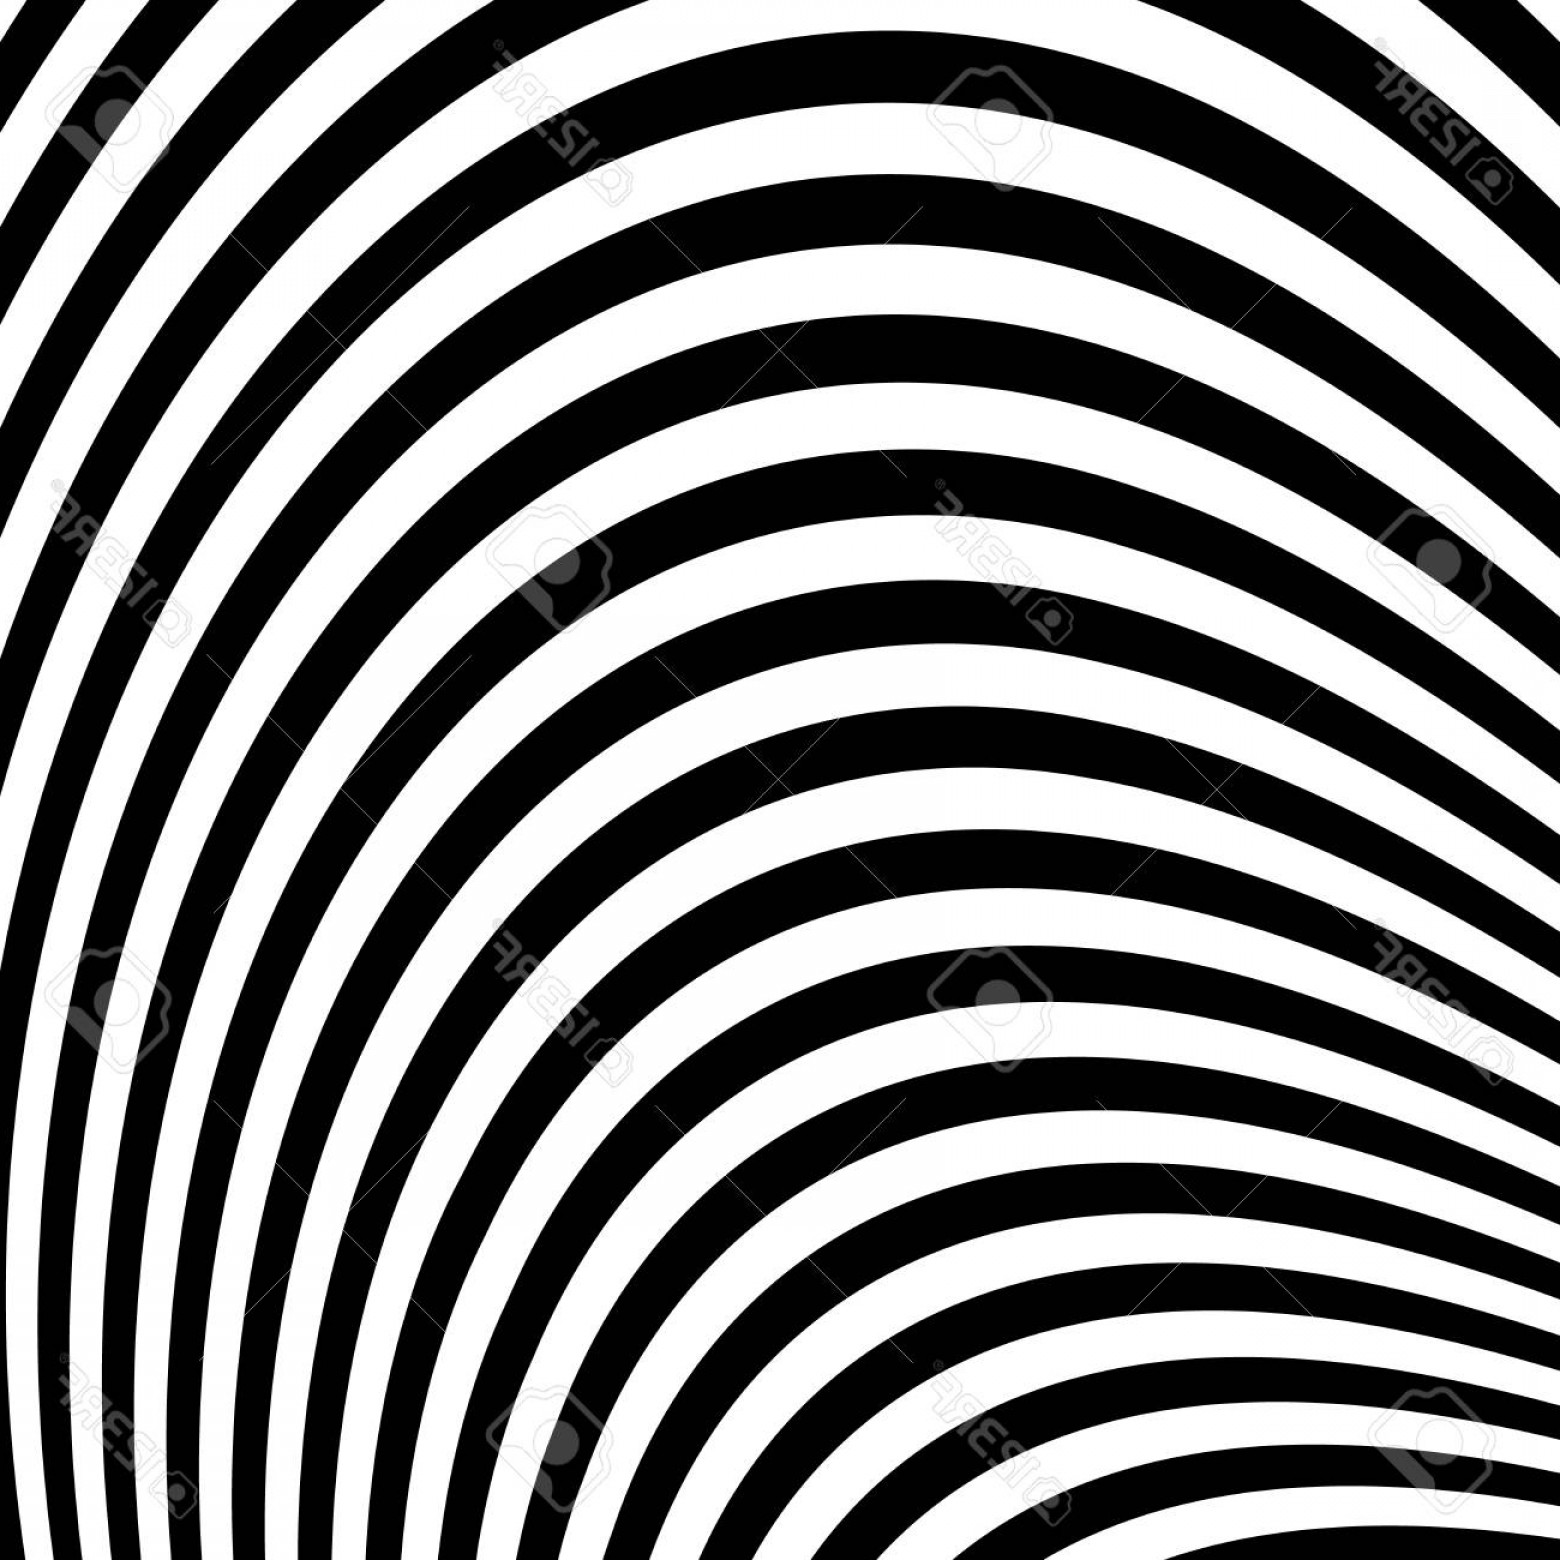 Black Abstract Lines Vector: Photostock Vector Abstract Vector Background Of Waves Optical Illusion Black And White Line Art Wave Icon Optical Art